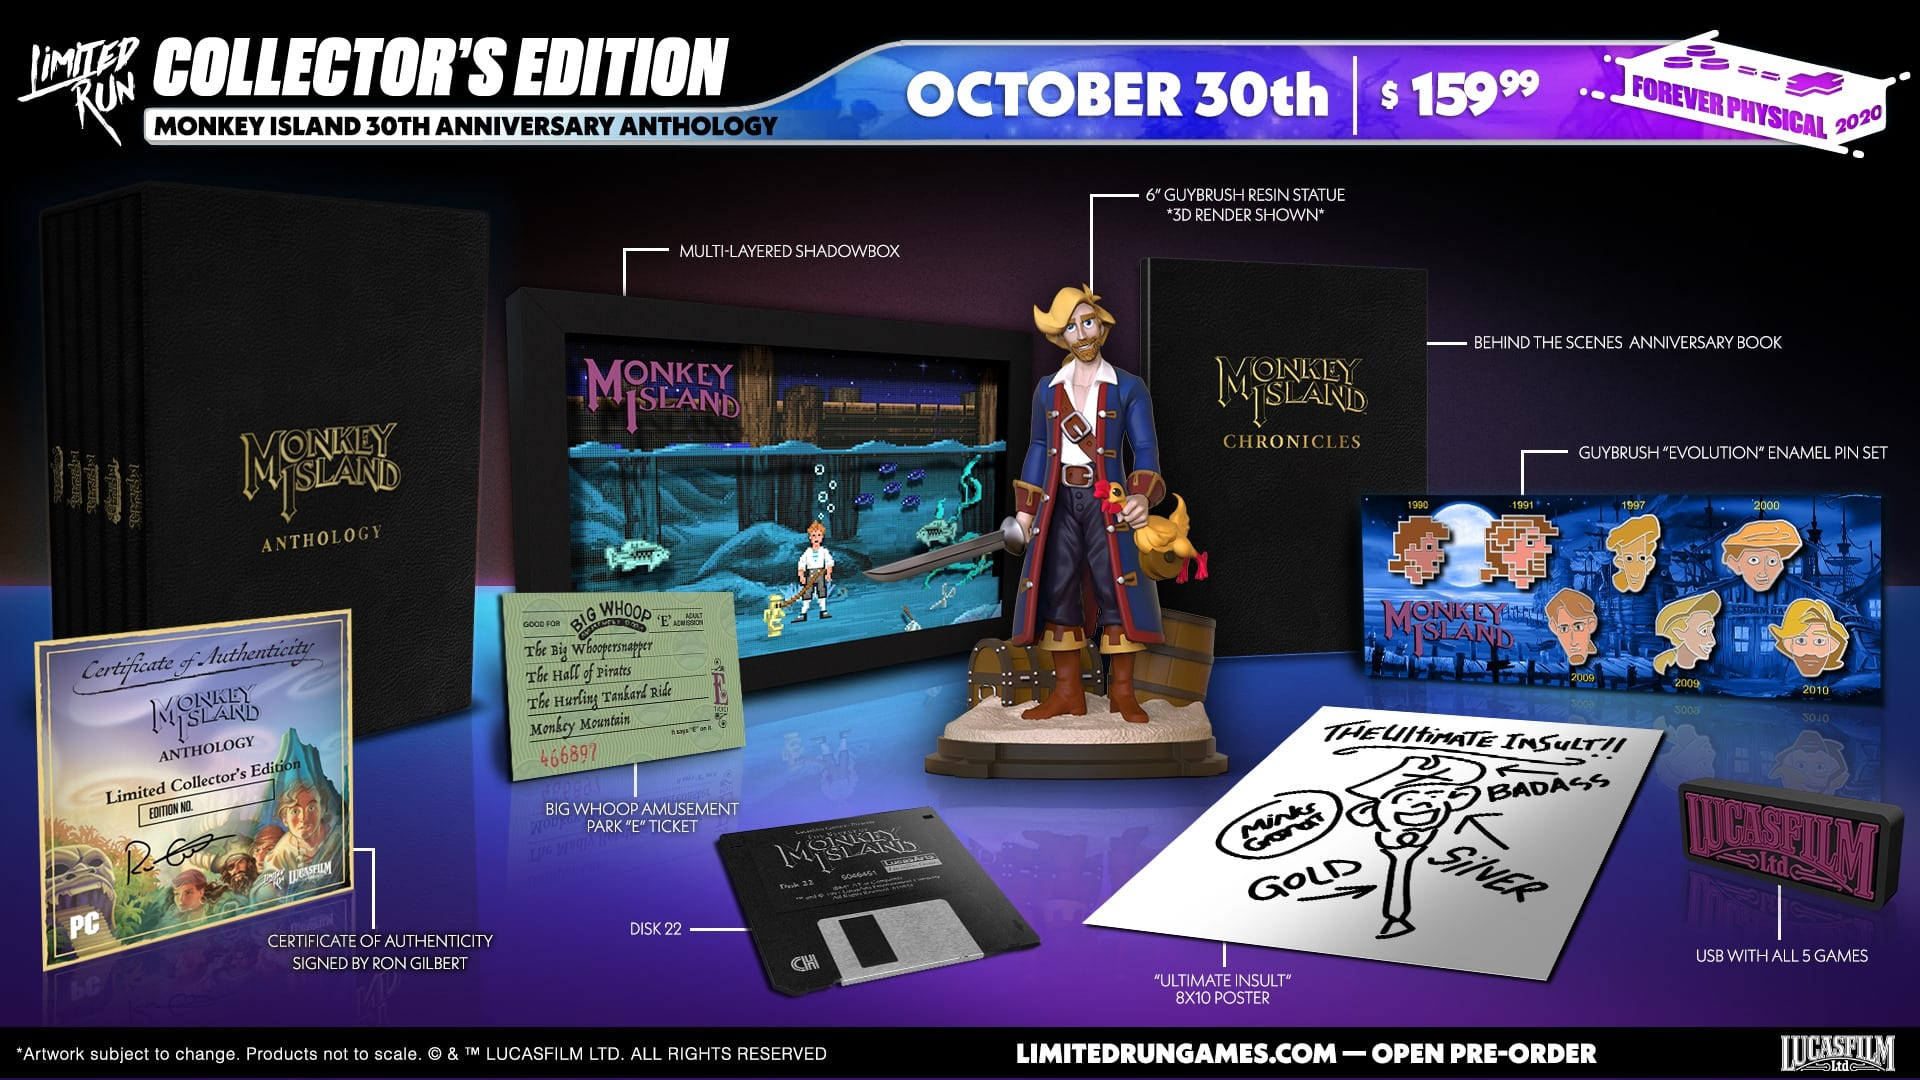 Monkey Island 30th Anniversary Antology Collector's Edition